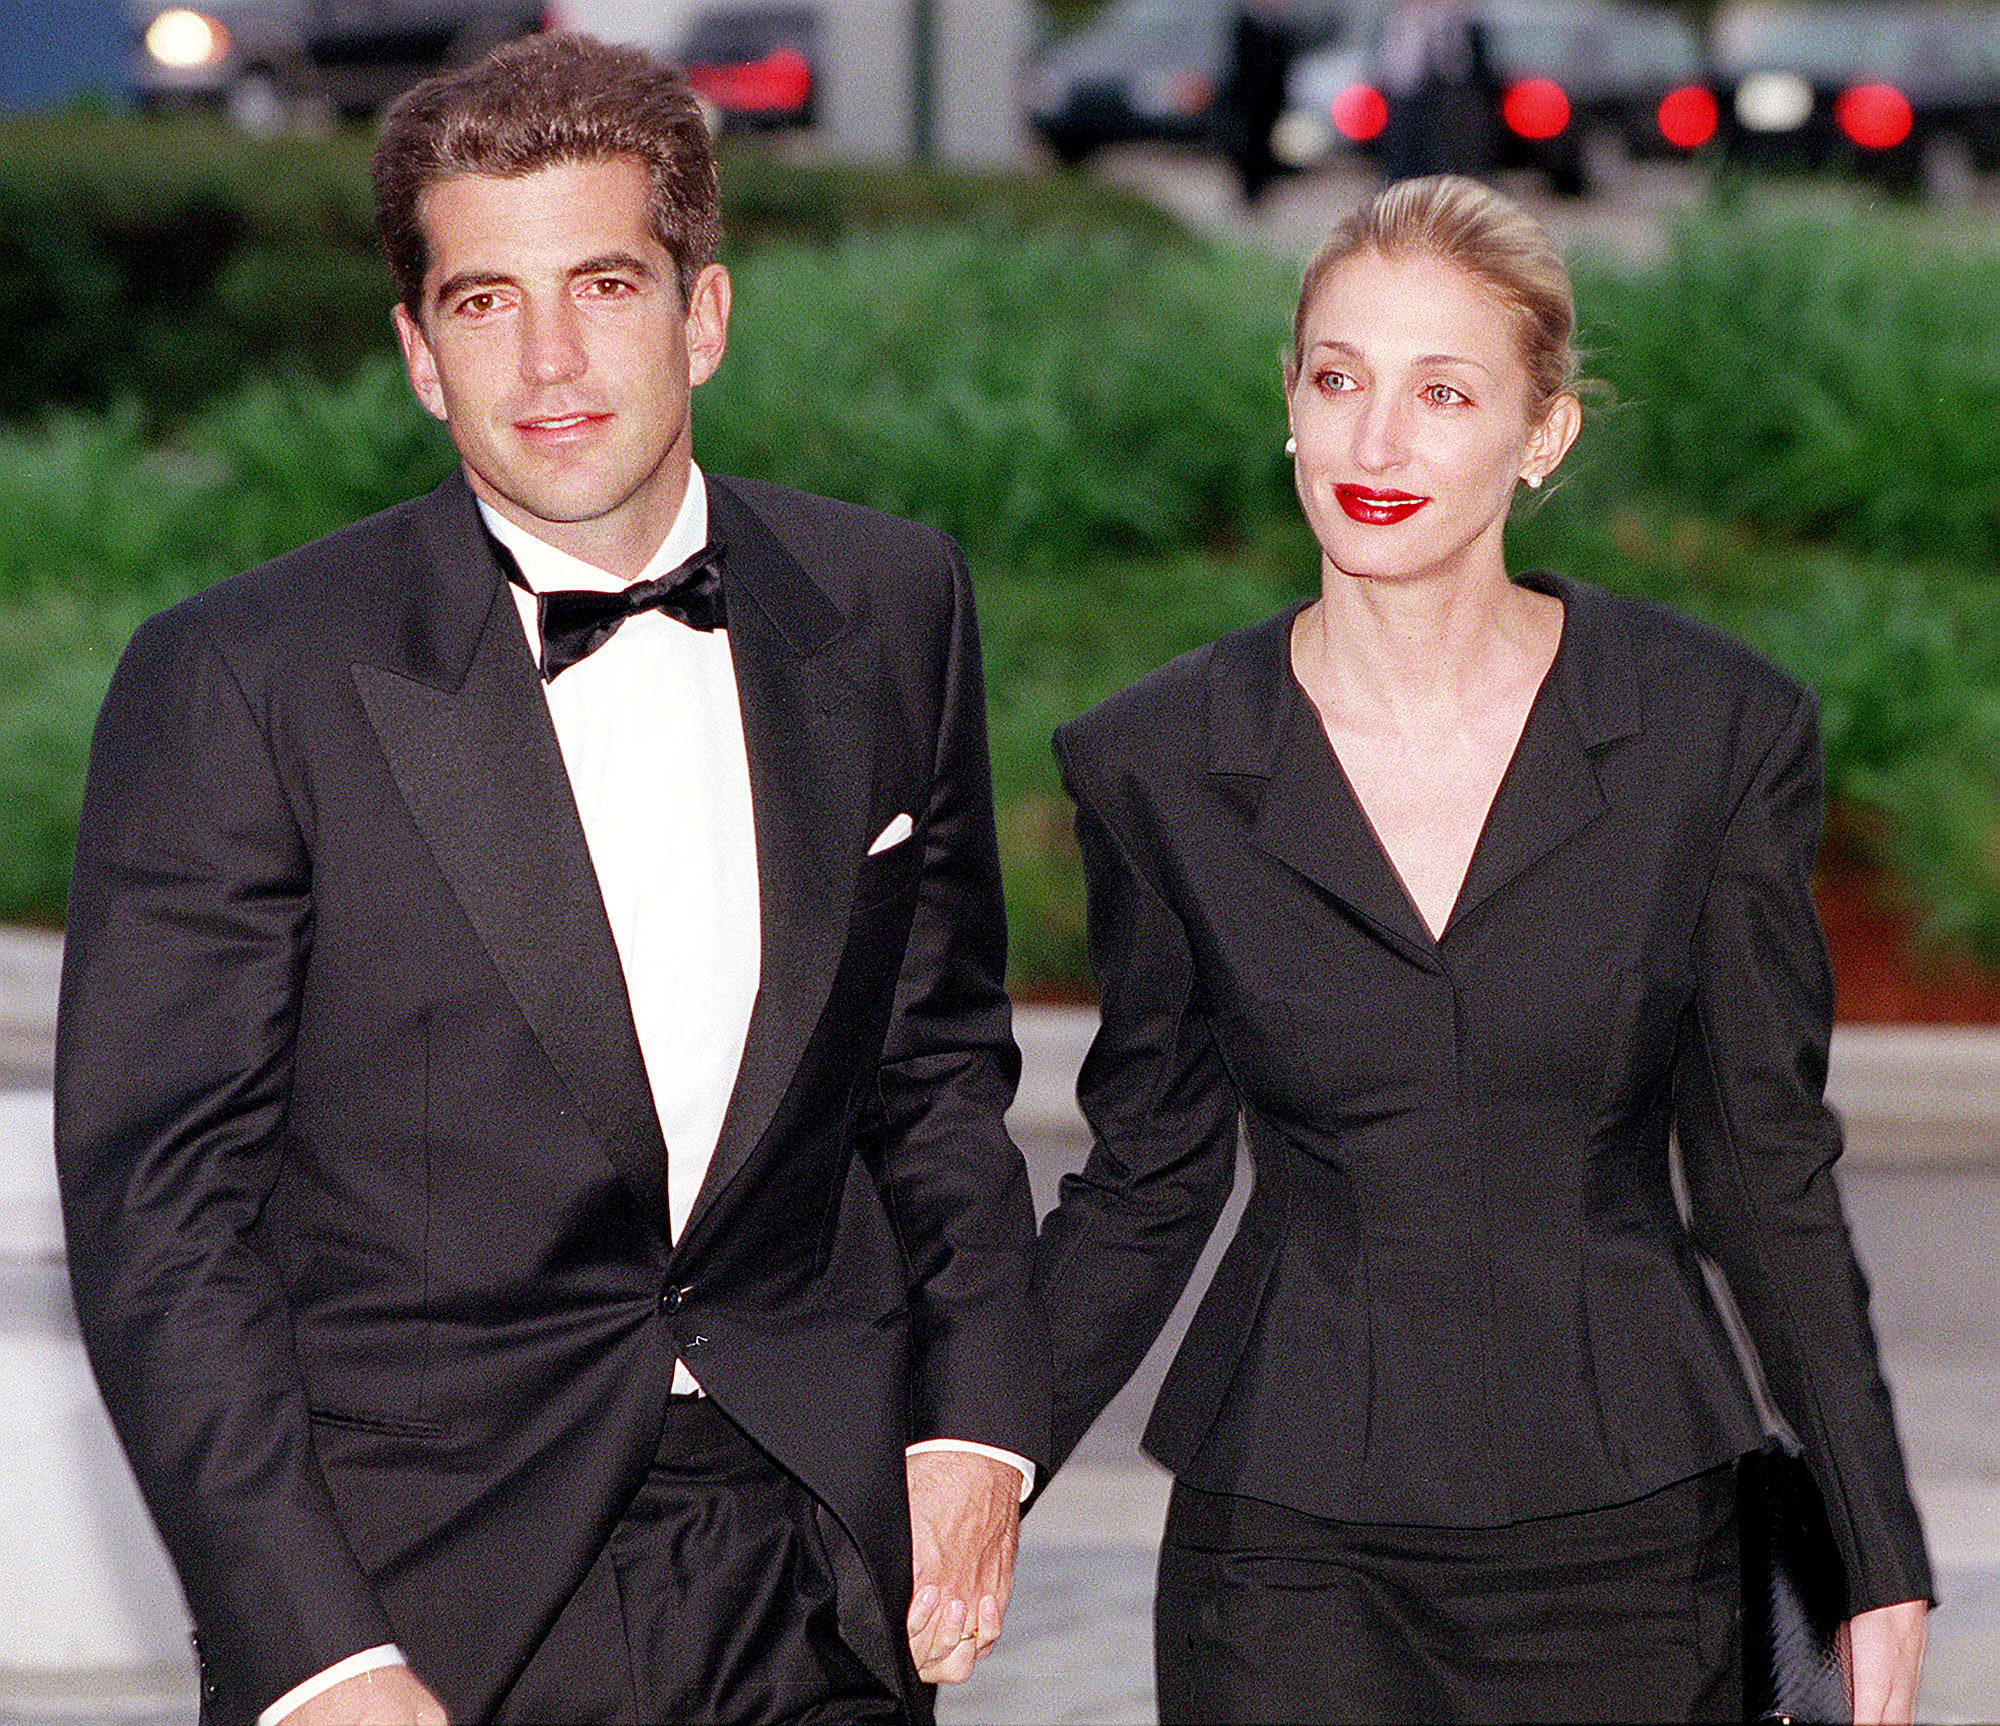 John F. Kennedy, Jr. and his wife Carolyn Bessette Kennedy